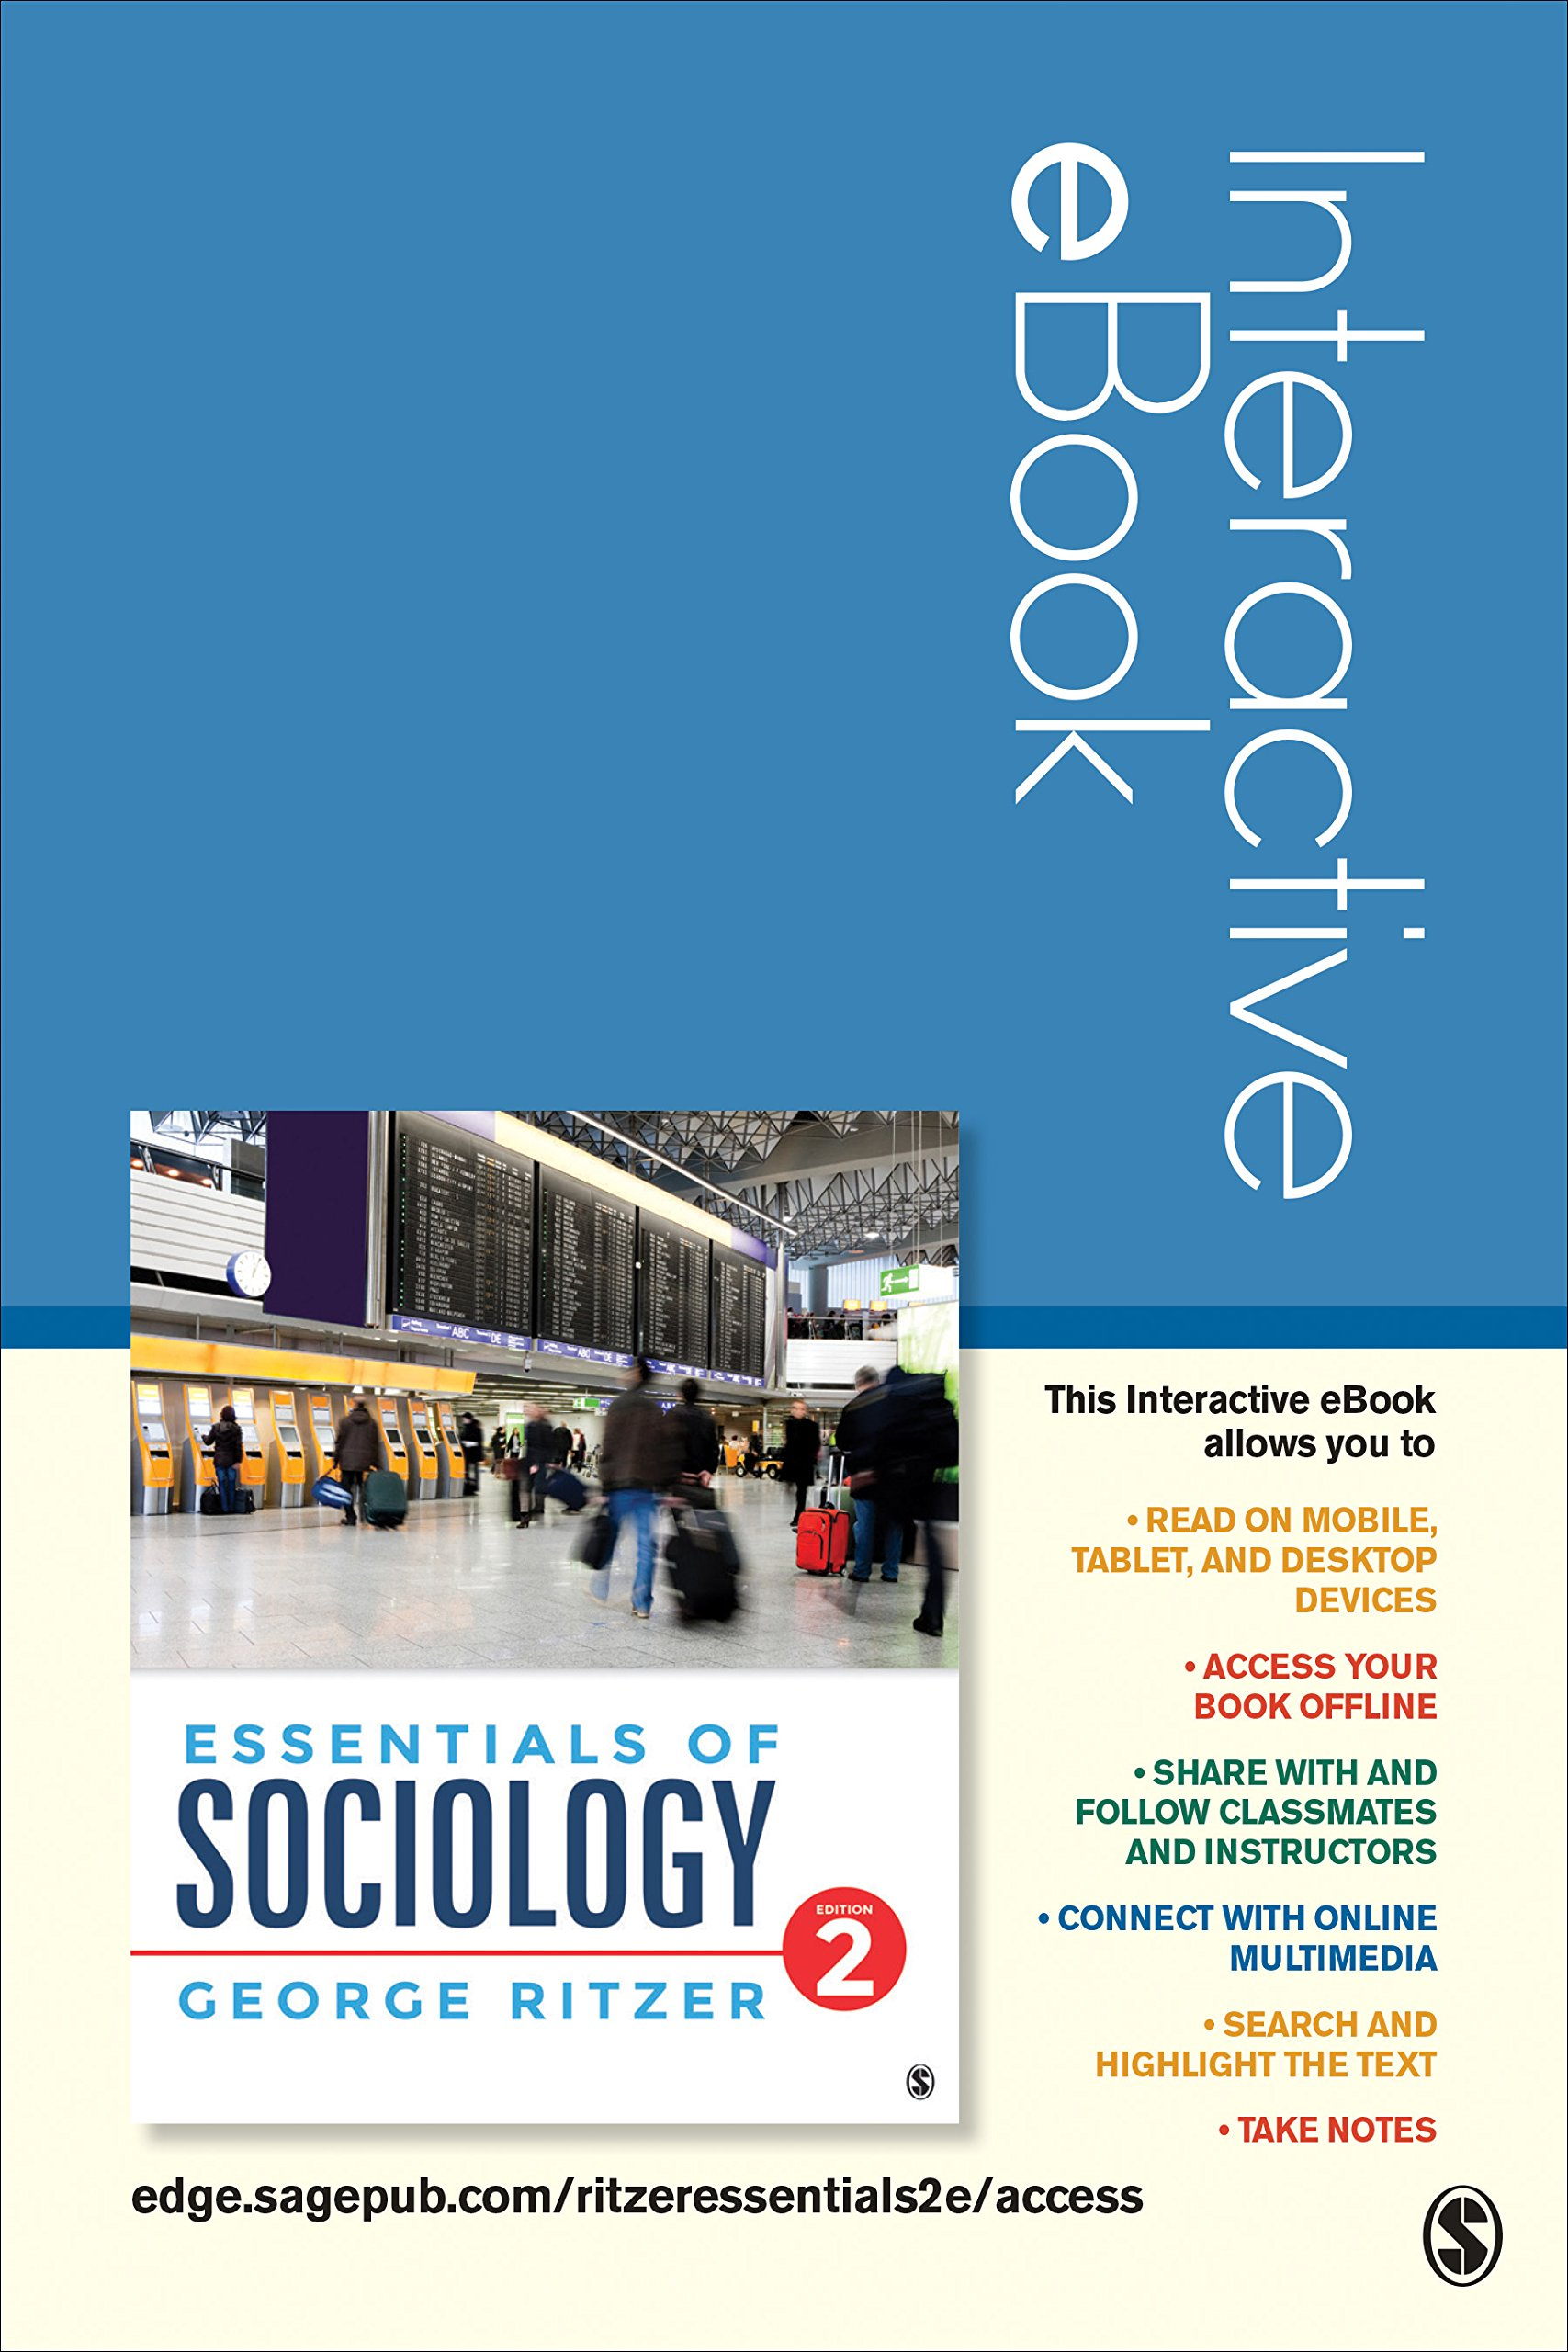 Essentials of Sociology Interactive eBook: 9781506339825: Amazon.com: Books